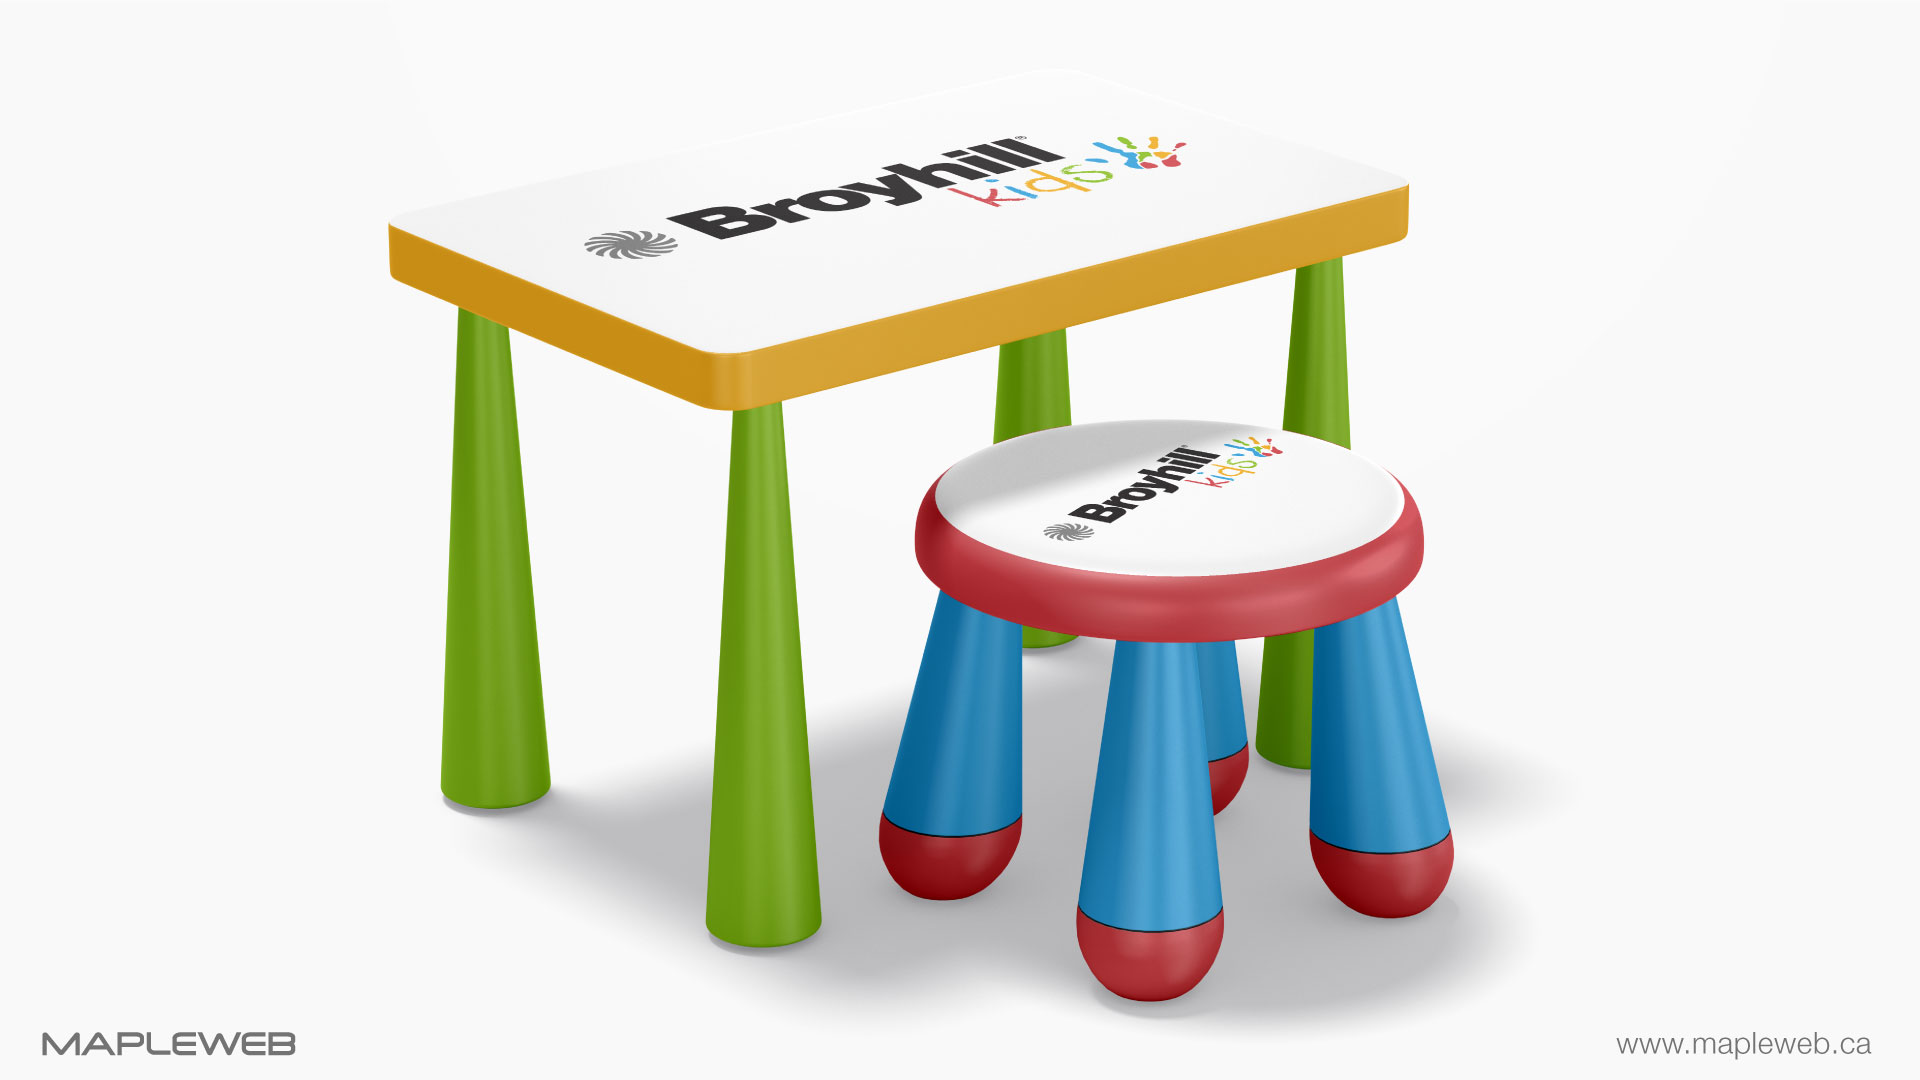 broyhill-kids-brand-logo-design-by-mapleweb-vancouver-canada-kids-sitting-chair-and-table-mock